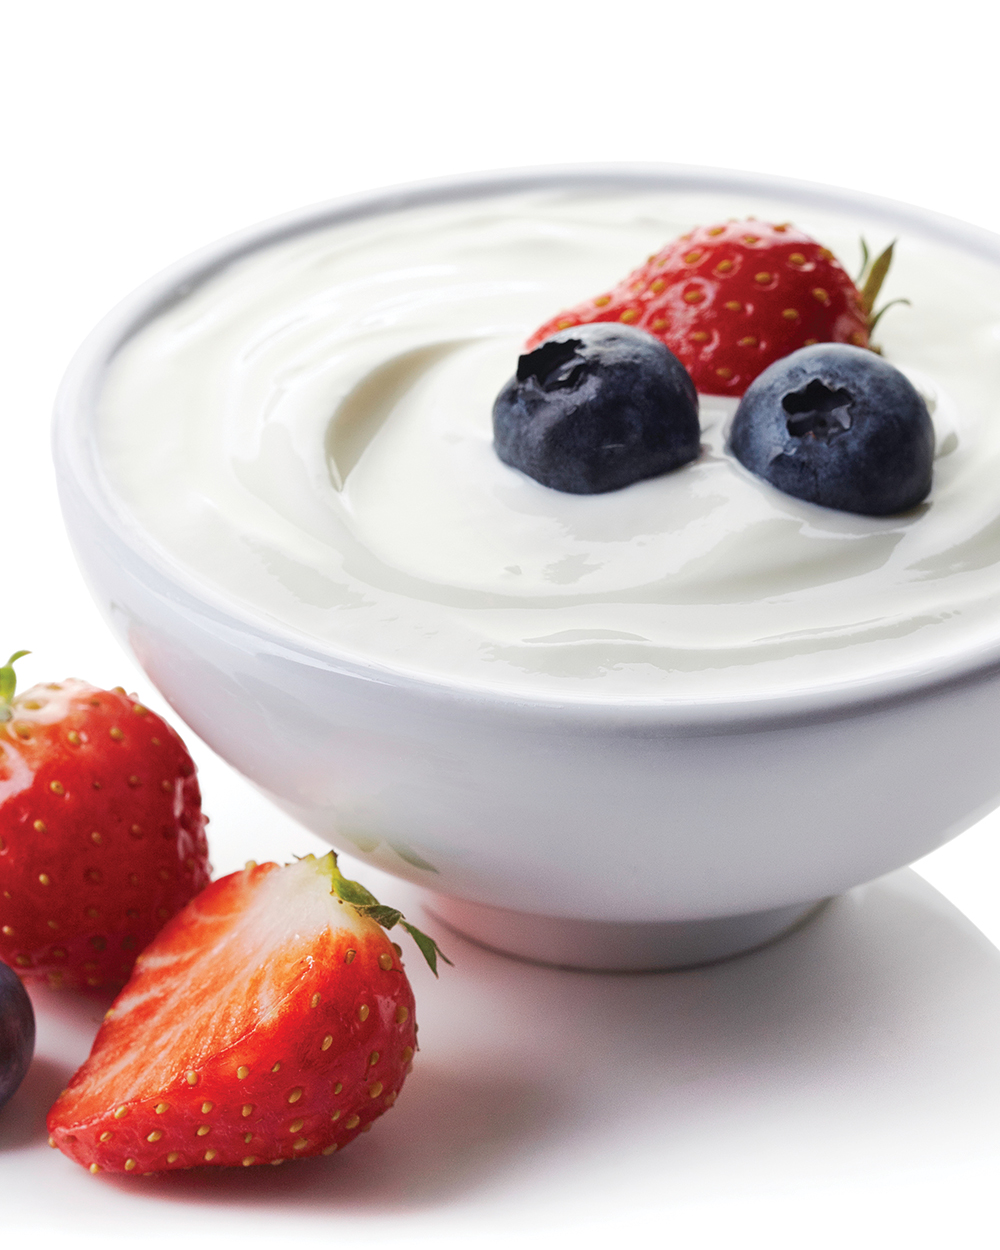 Delicious Greek yogurt recipes to try at home.